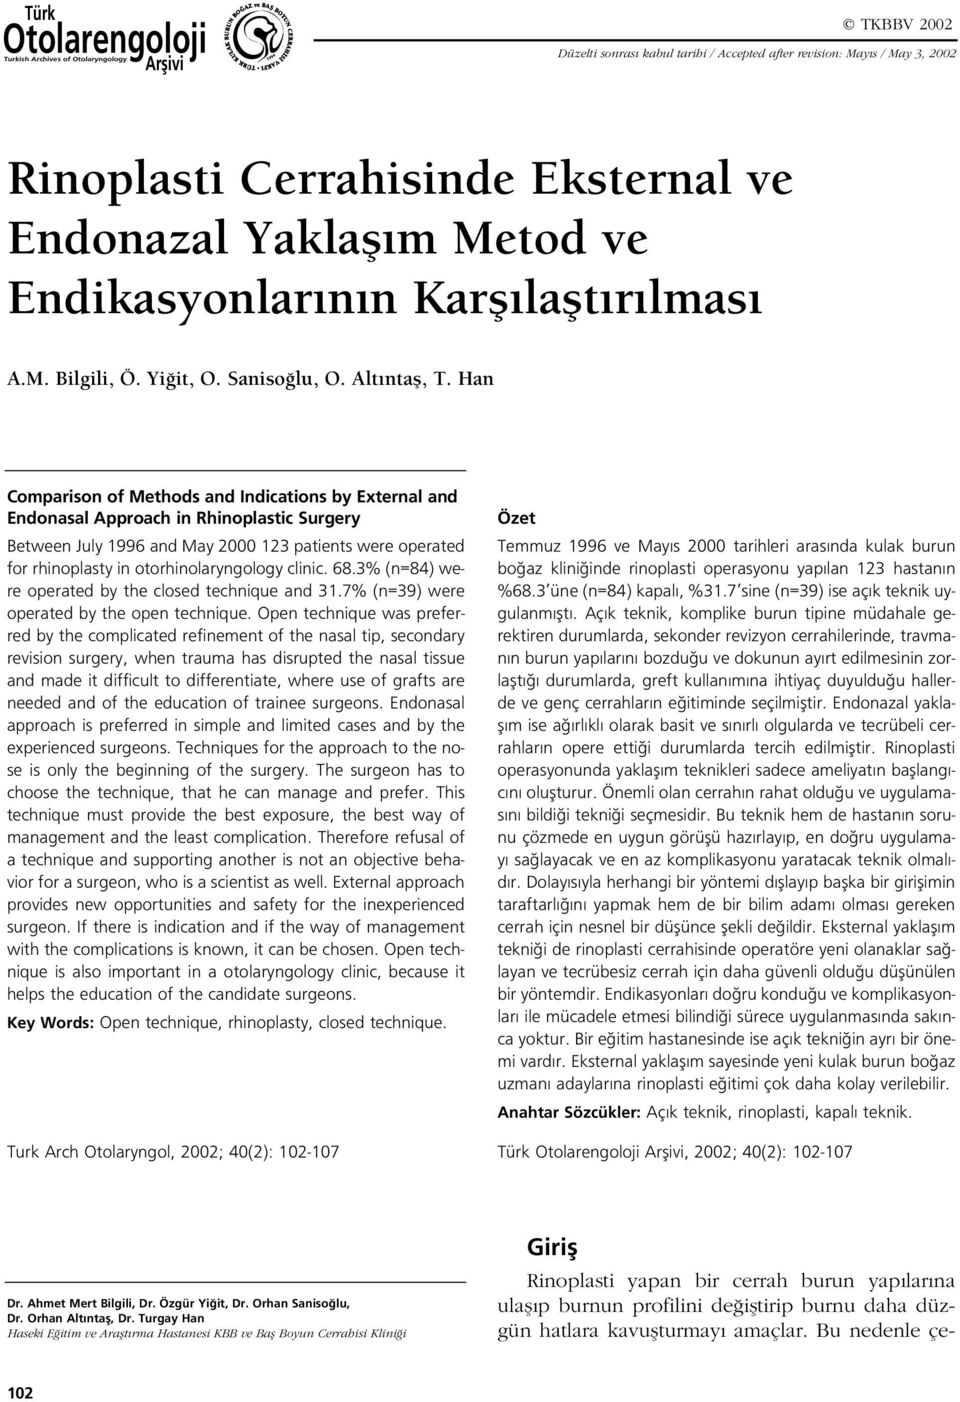 Han Comparison of Methods and Indications by External and Endonasal Approach in Rhinoplastic Surgery Between July 1996 and May 000 13 patients were operated for rhinoplasty in otorhinolaryngology